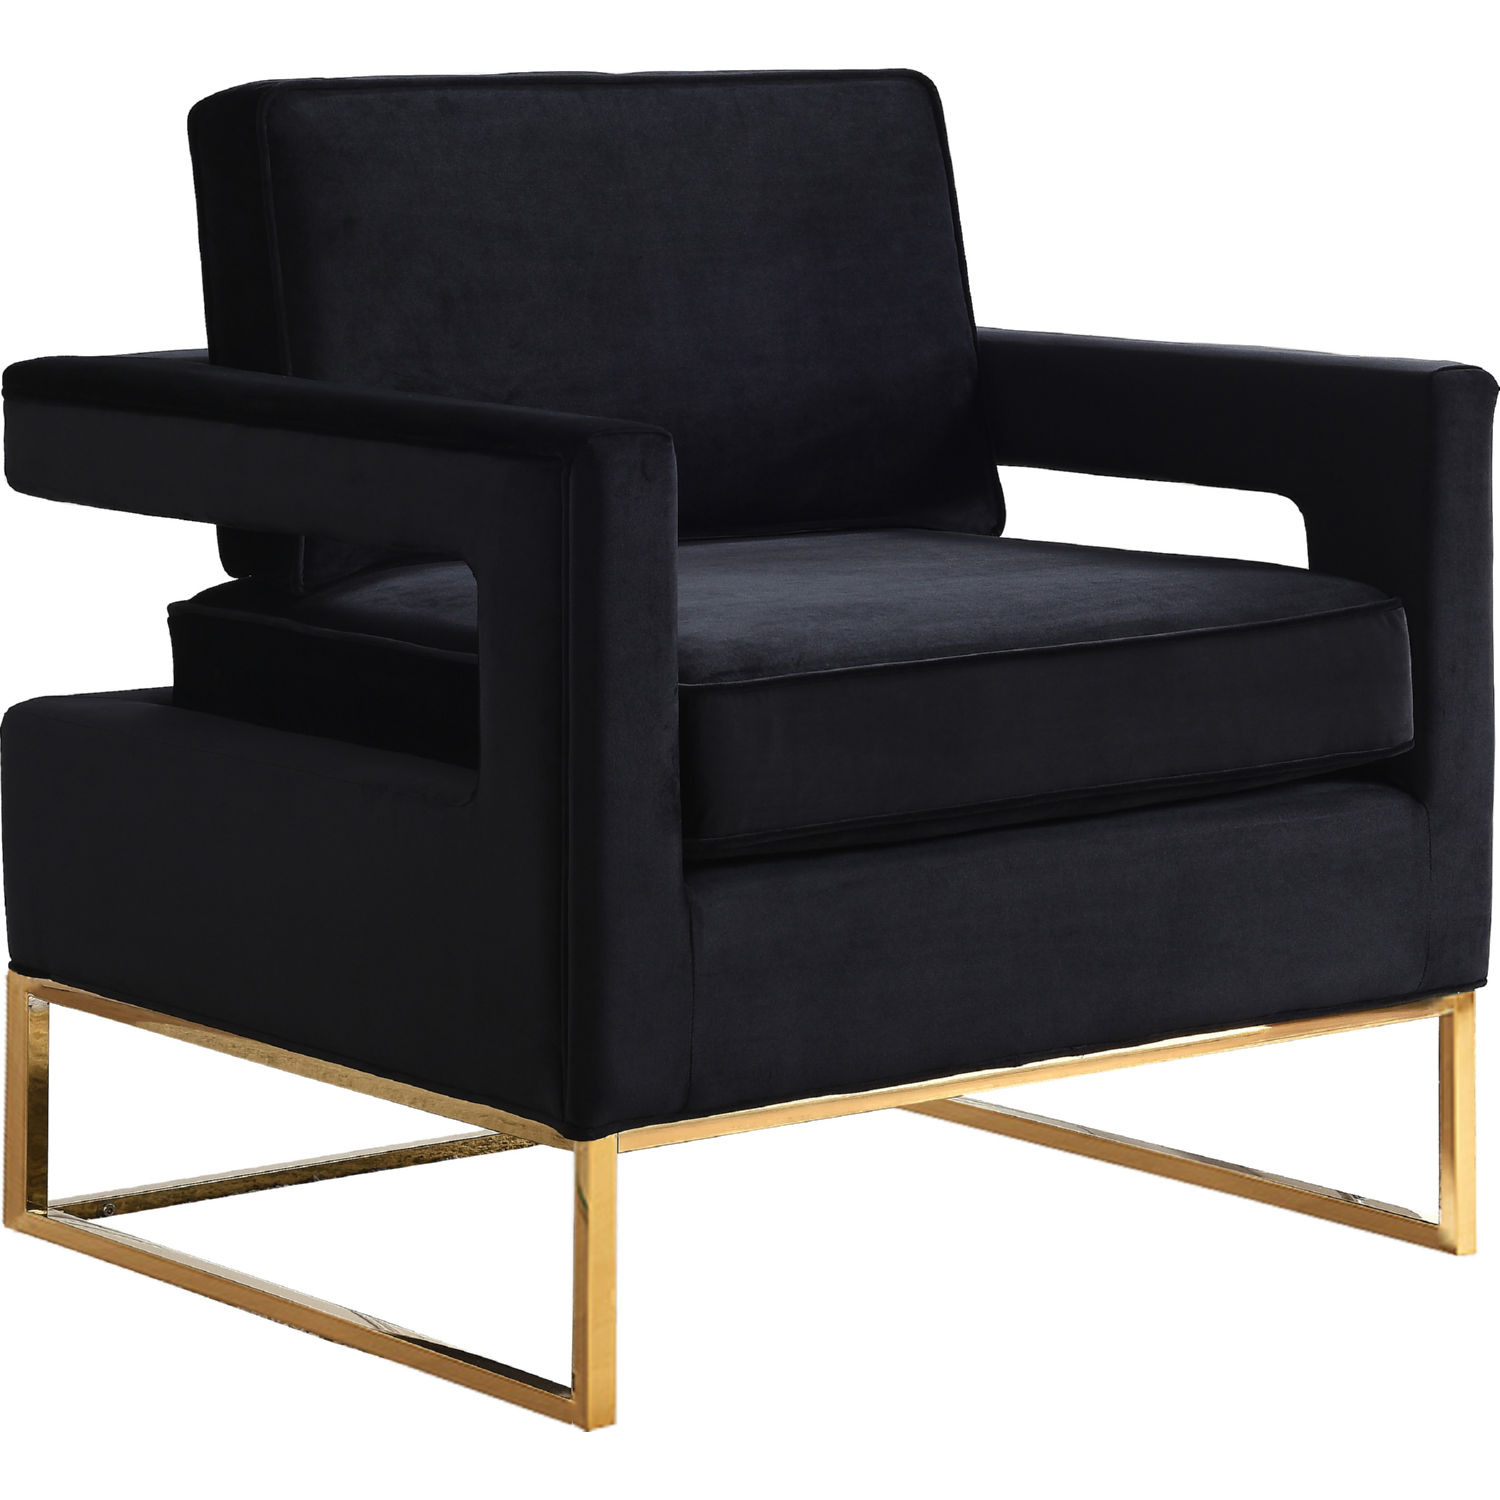 Meridian Furniture Noah Accent Chair In Black Velvet On Gold Stainless  Steel Base